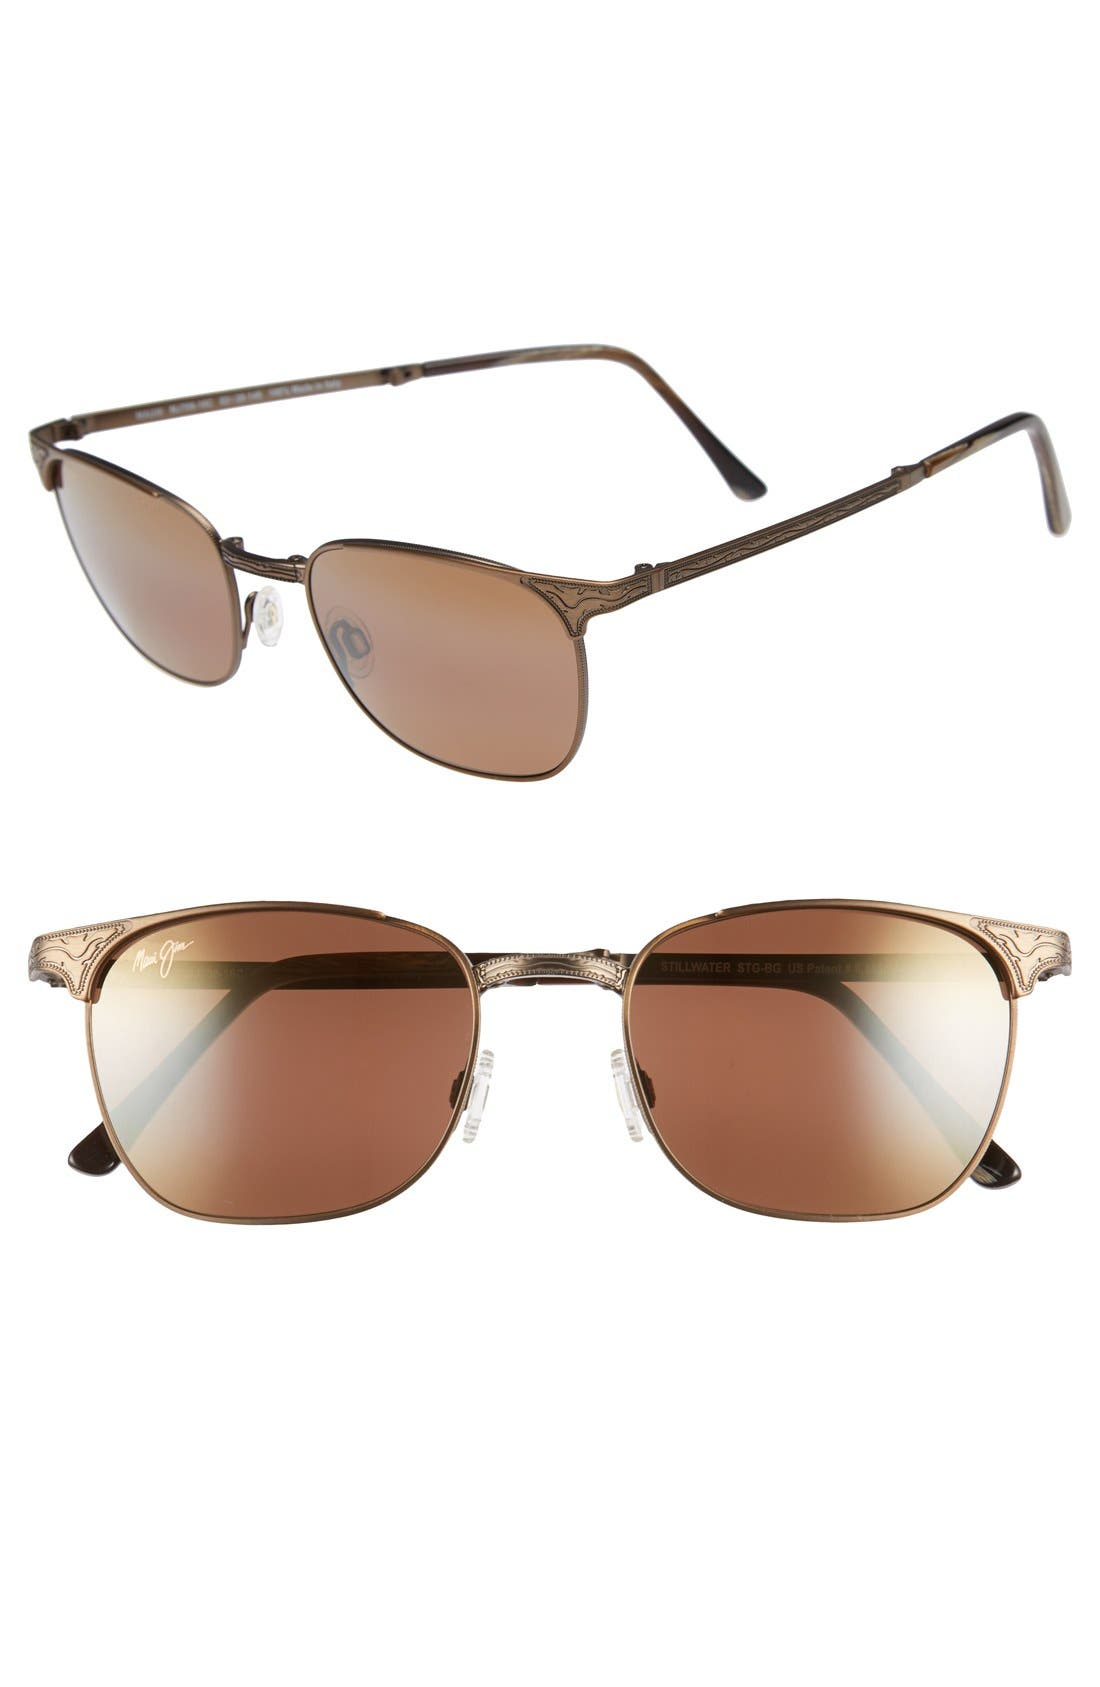 'Stillwater' 52mm Polarized Sunglasses,                             Main thumbnail 1, color,                             ANTIQUE GOLD/HCL BRONZE